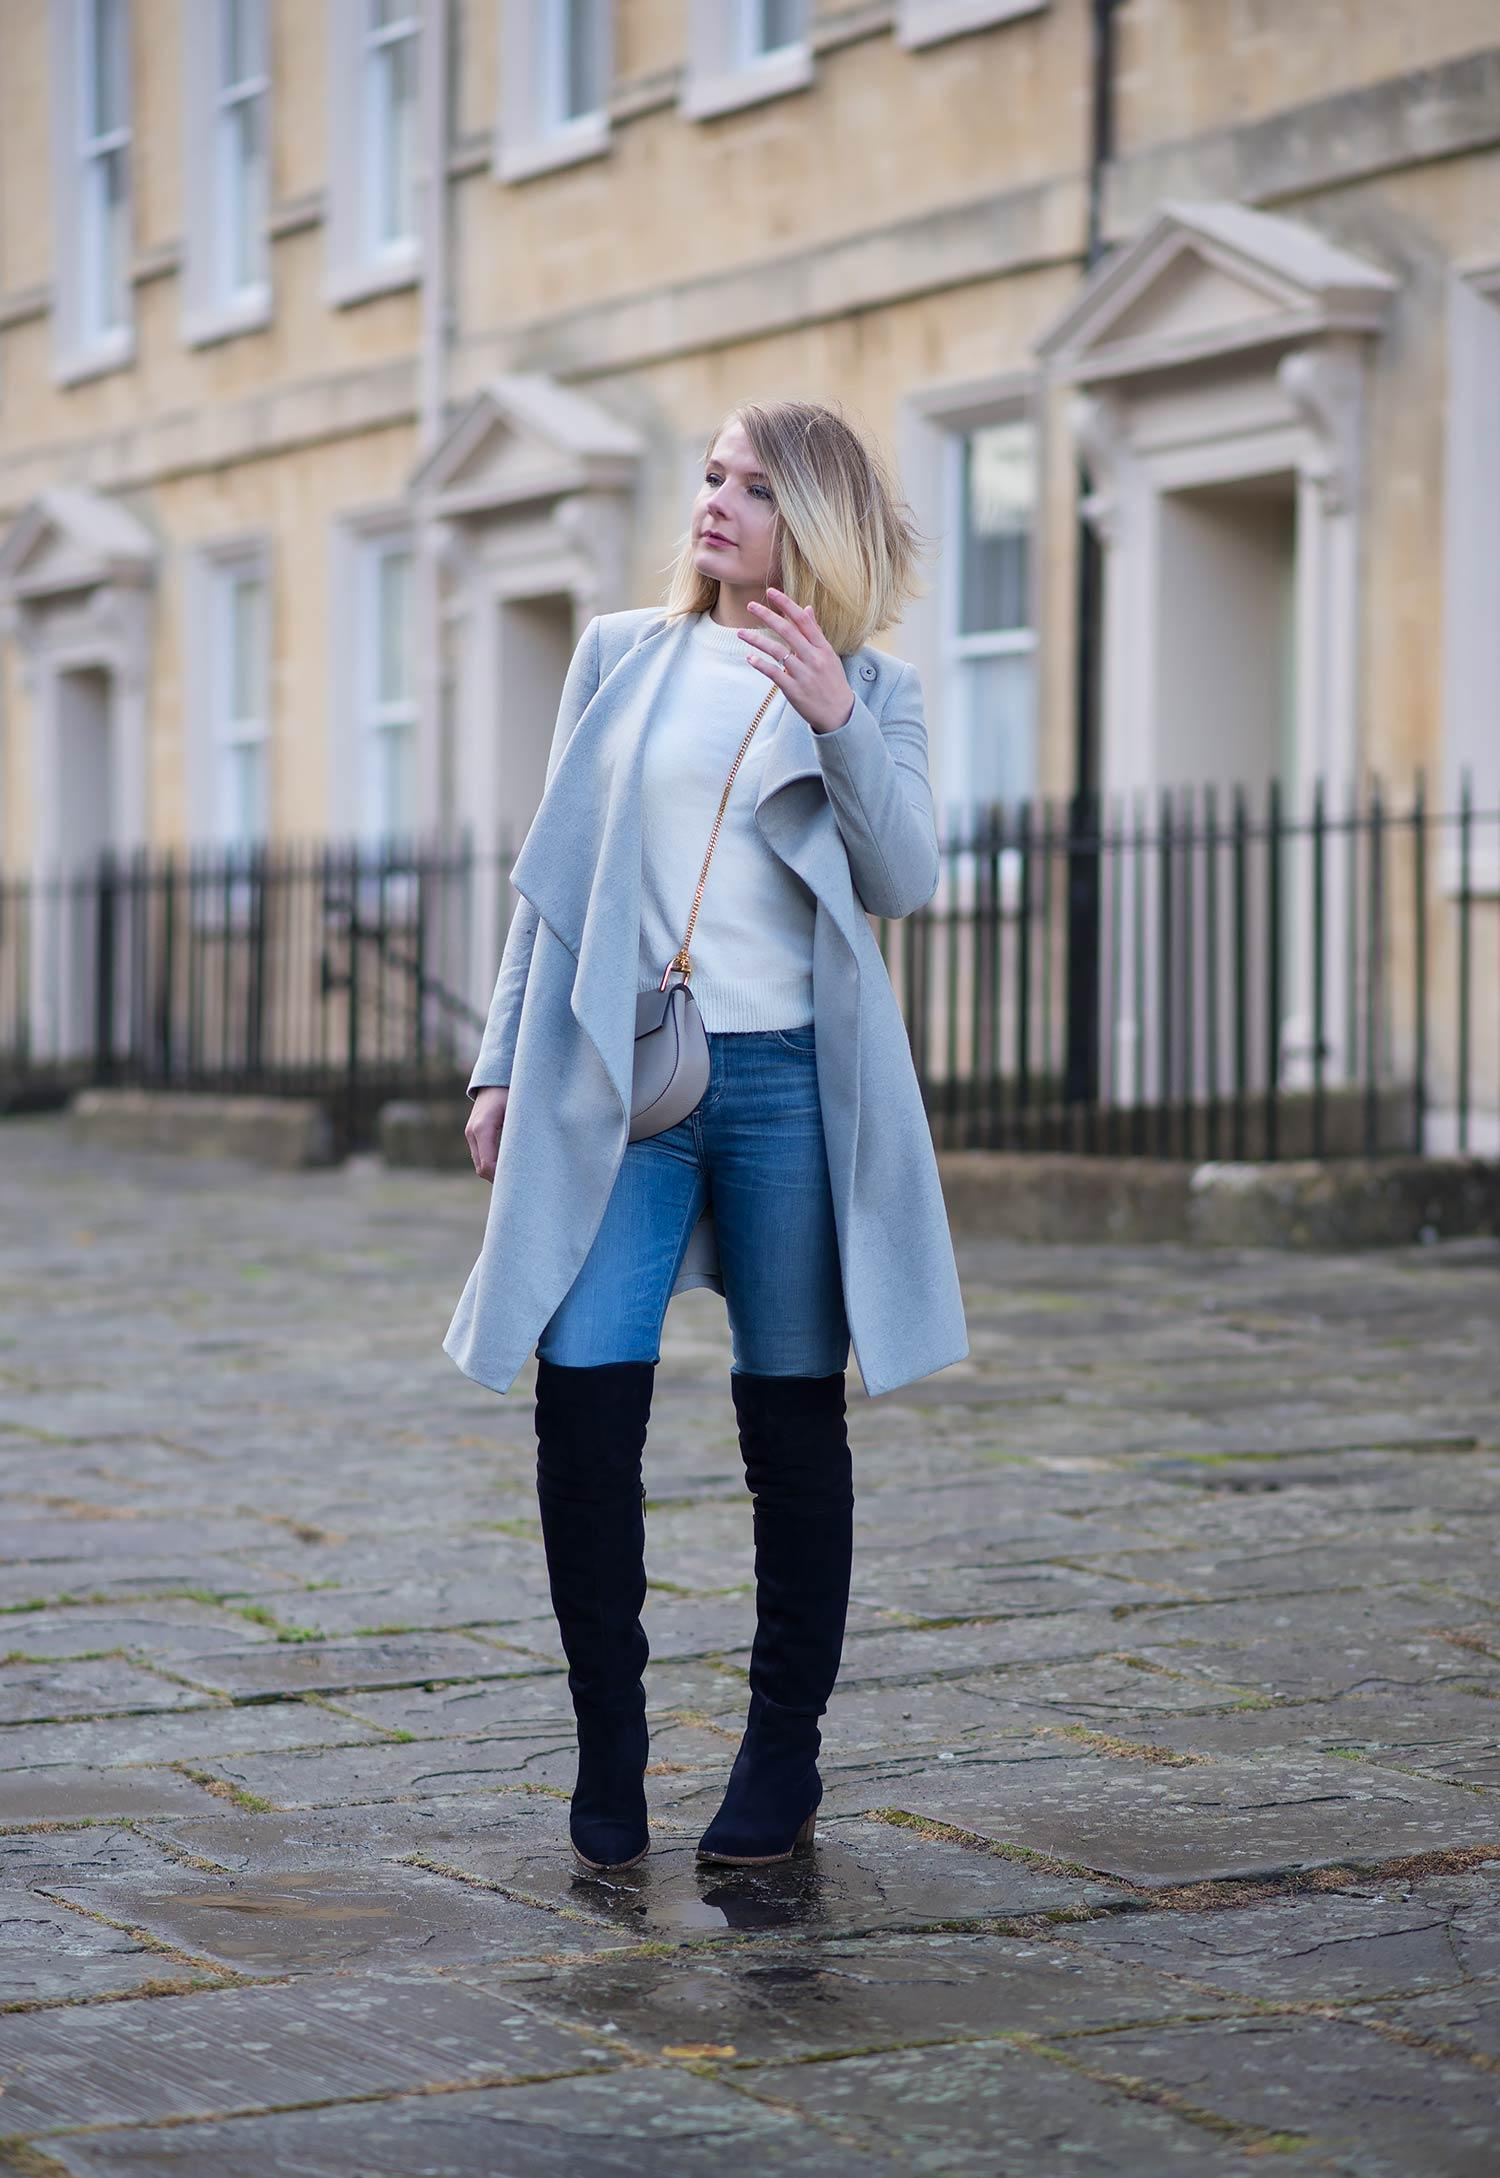 lorna-burford-uk-fashion-blogger-boots-jeans-coat